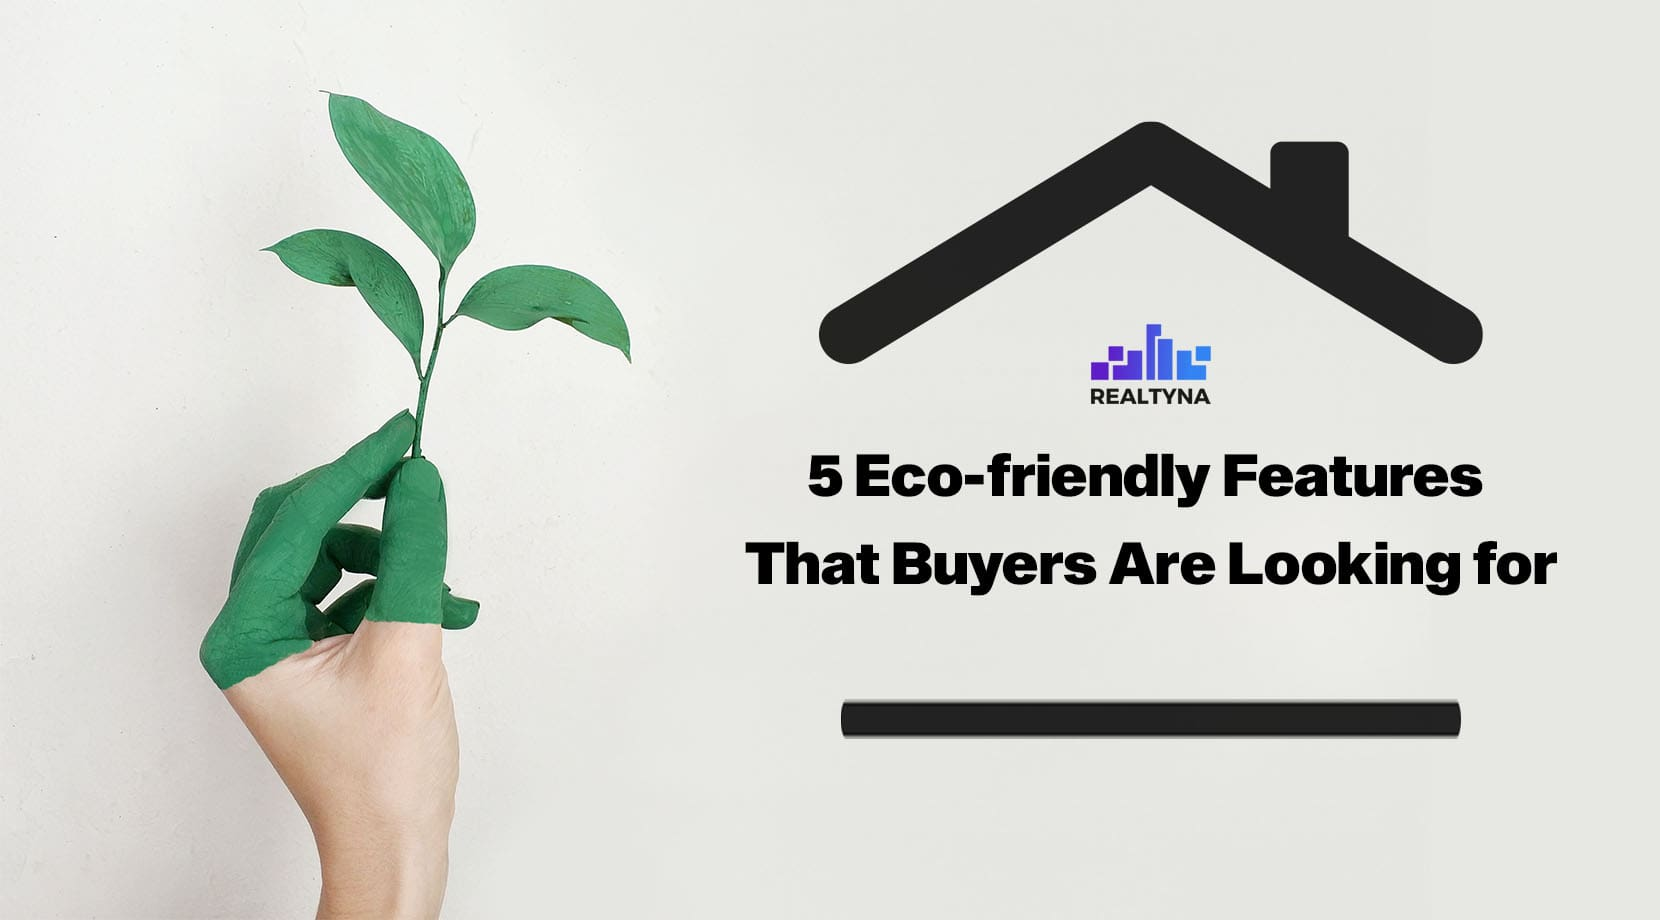 eco-friendly features for real estate buyers